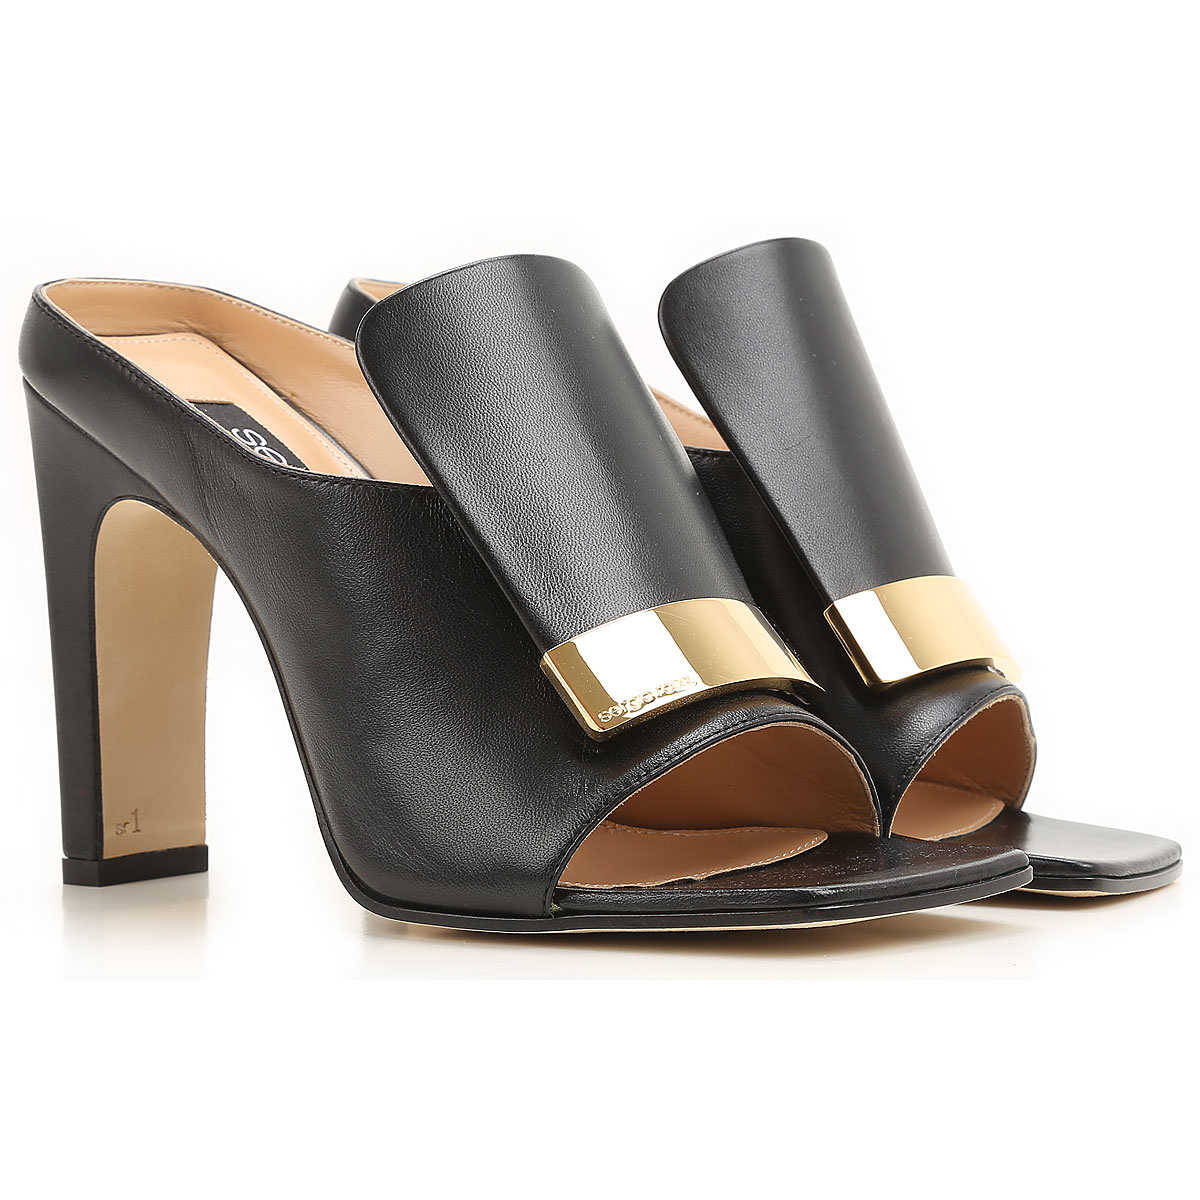 Sergio Rossi Sandals for Women On Sale in Outlet Black UK - GOOFASH